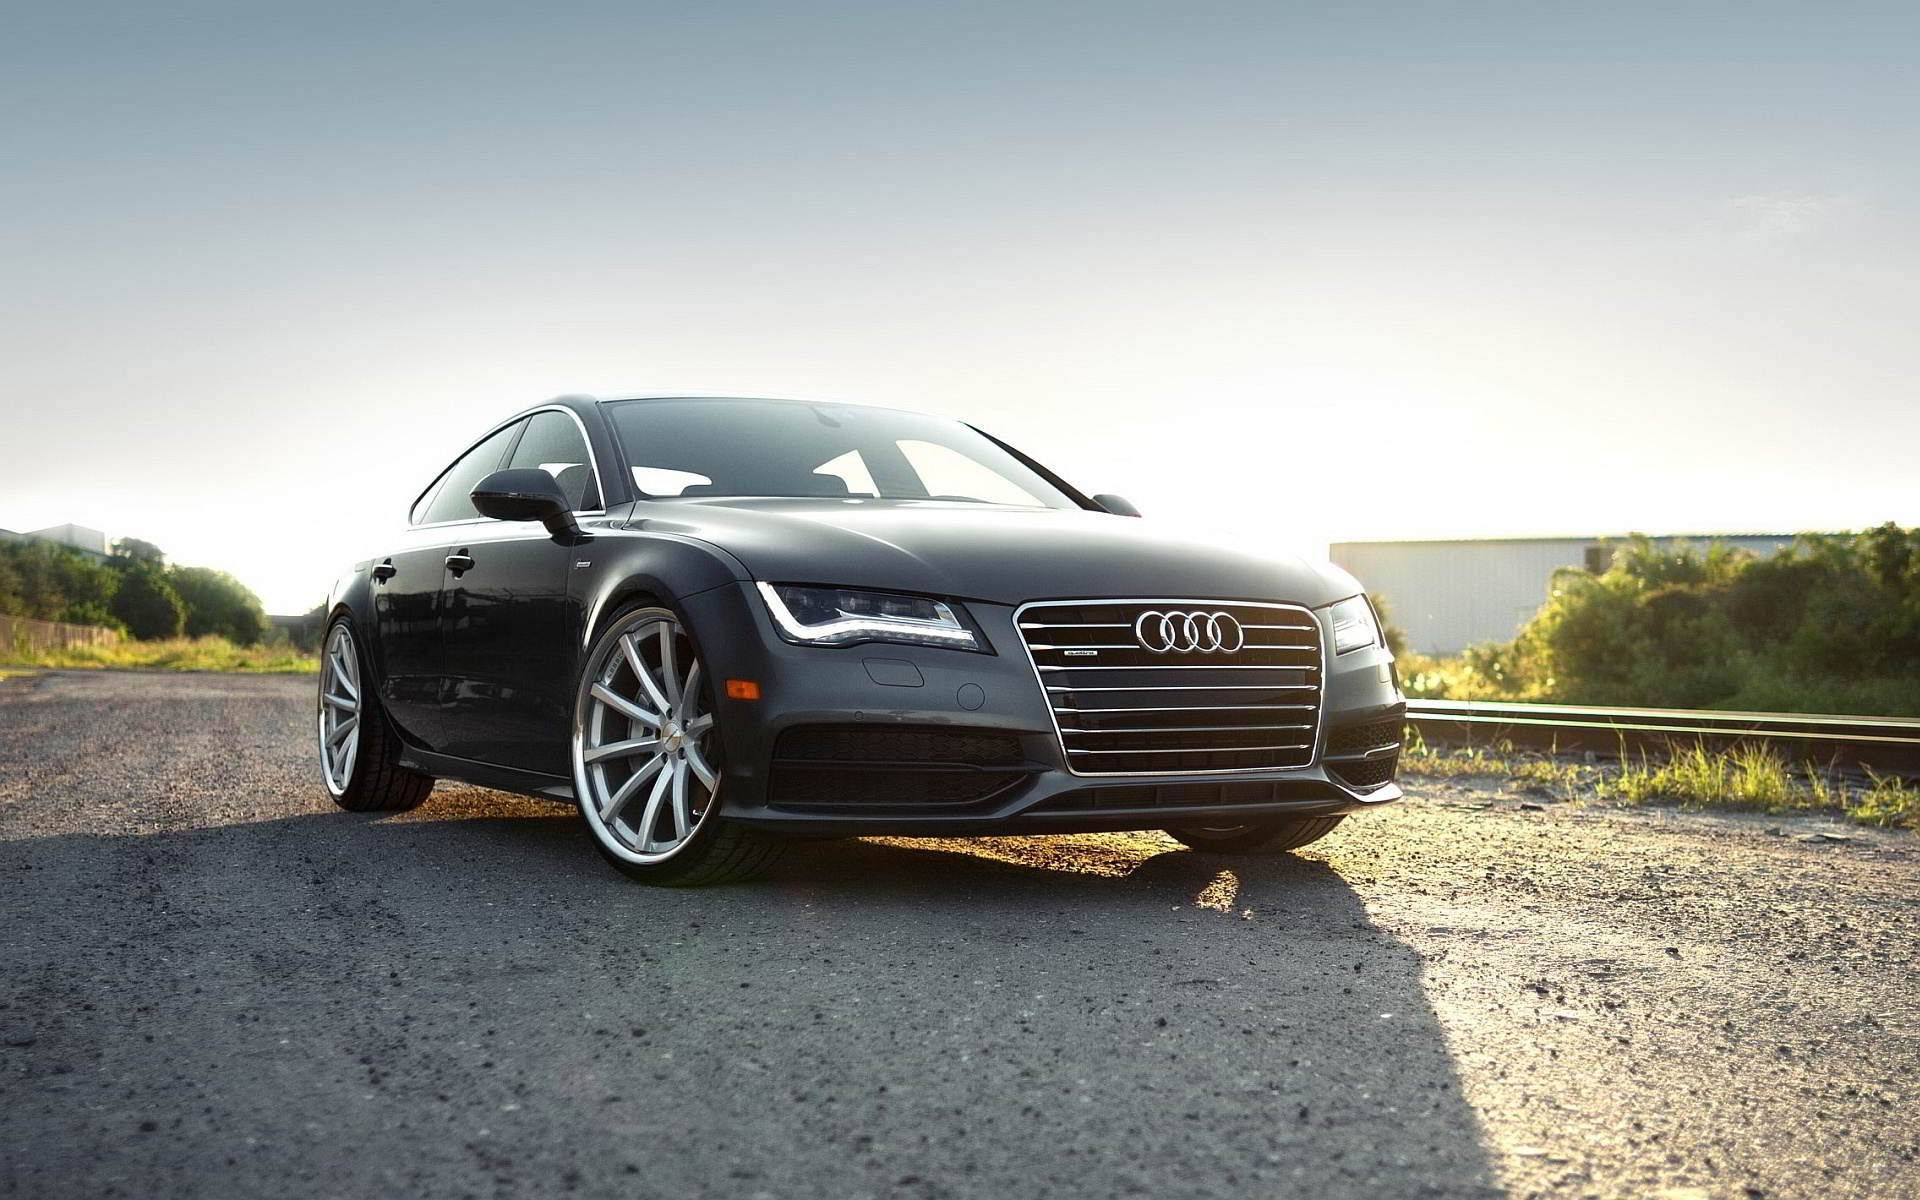 Audi Black A7 Pc Hd Wallpaper Categories And Make This Wallpaper For Your Desktop Tablet And Smartphone Devices Screen Beautiful We Audi A7 Black Audi Audi